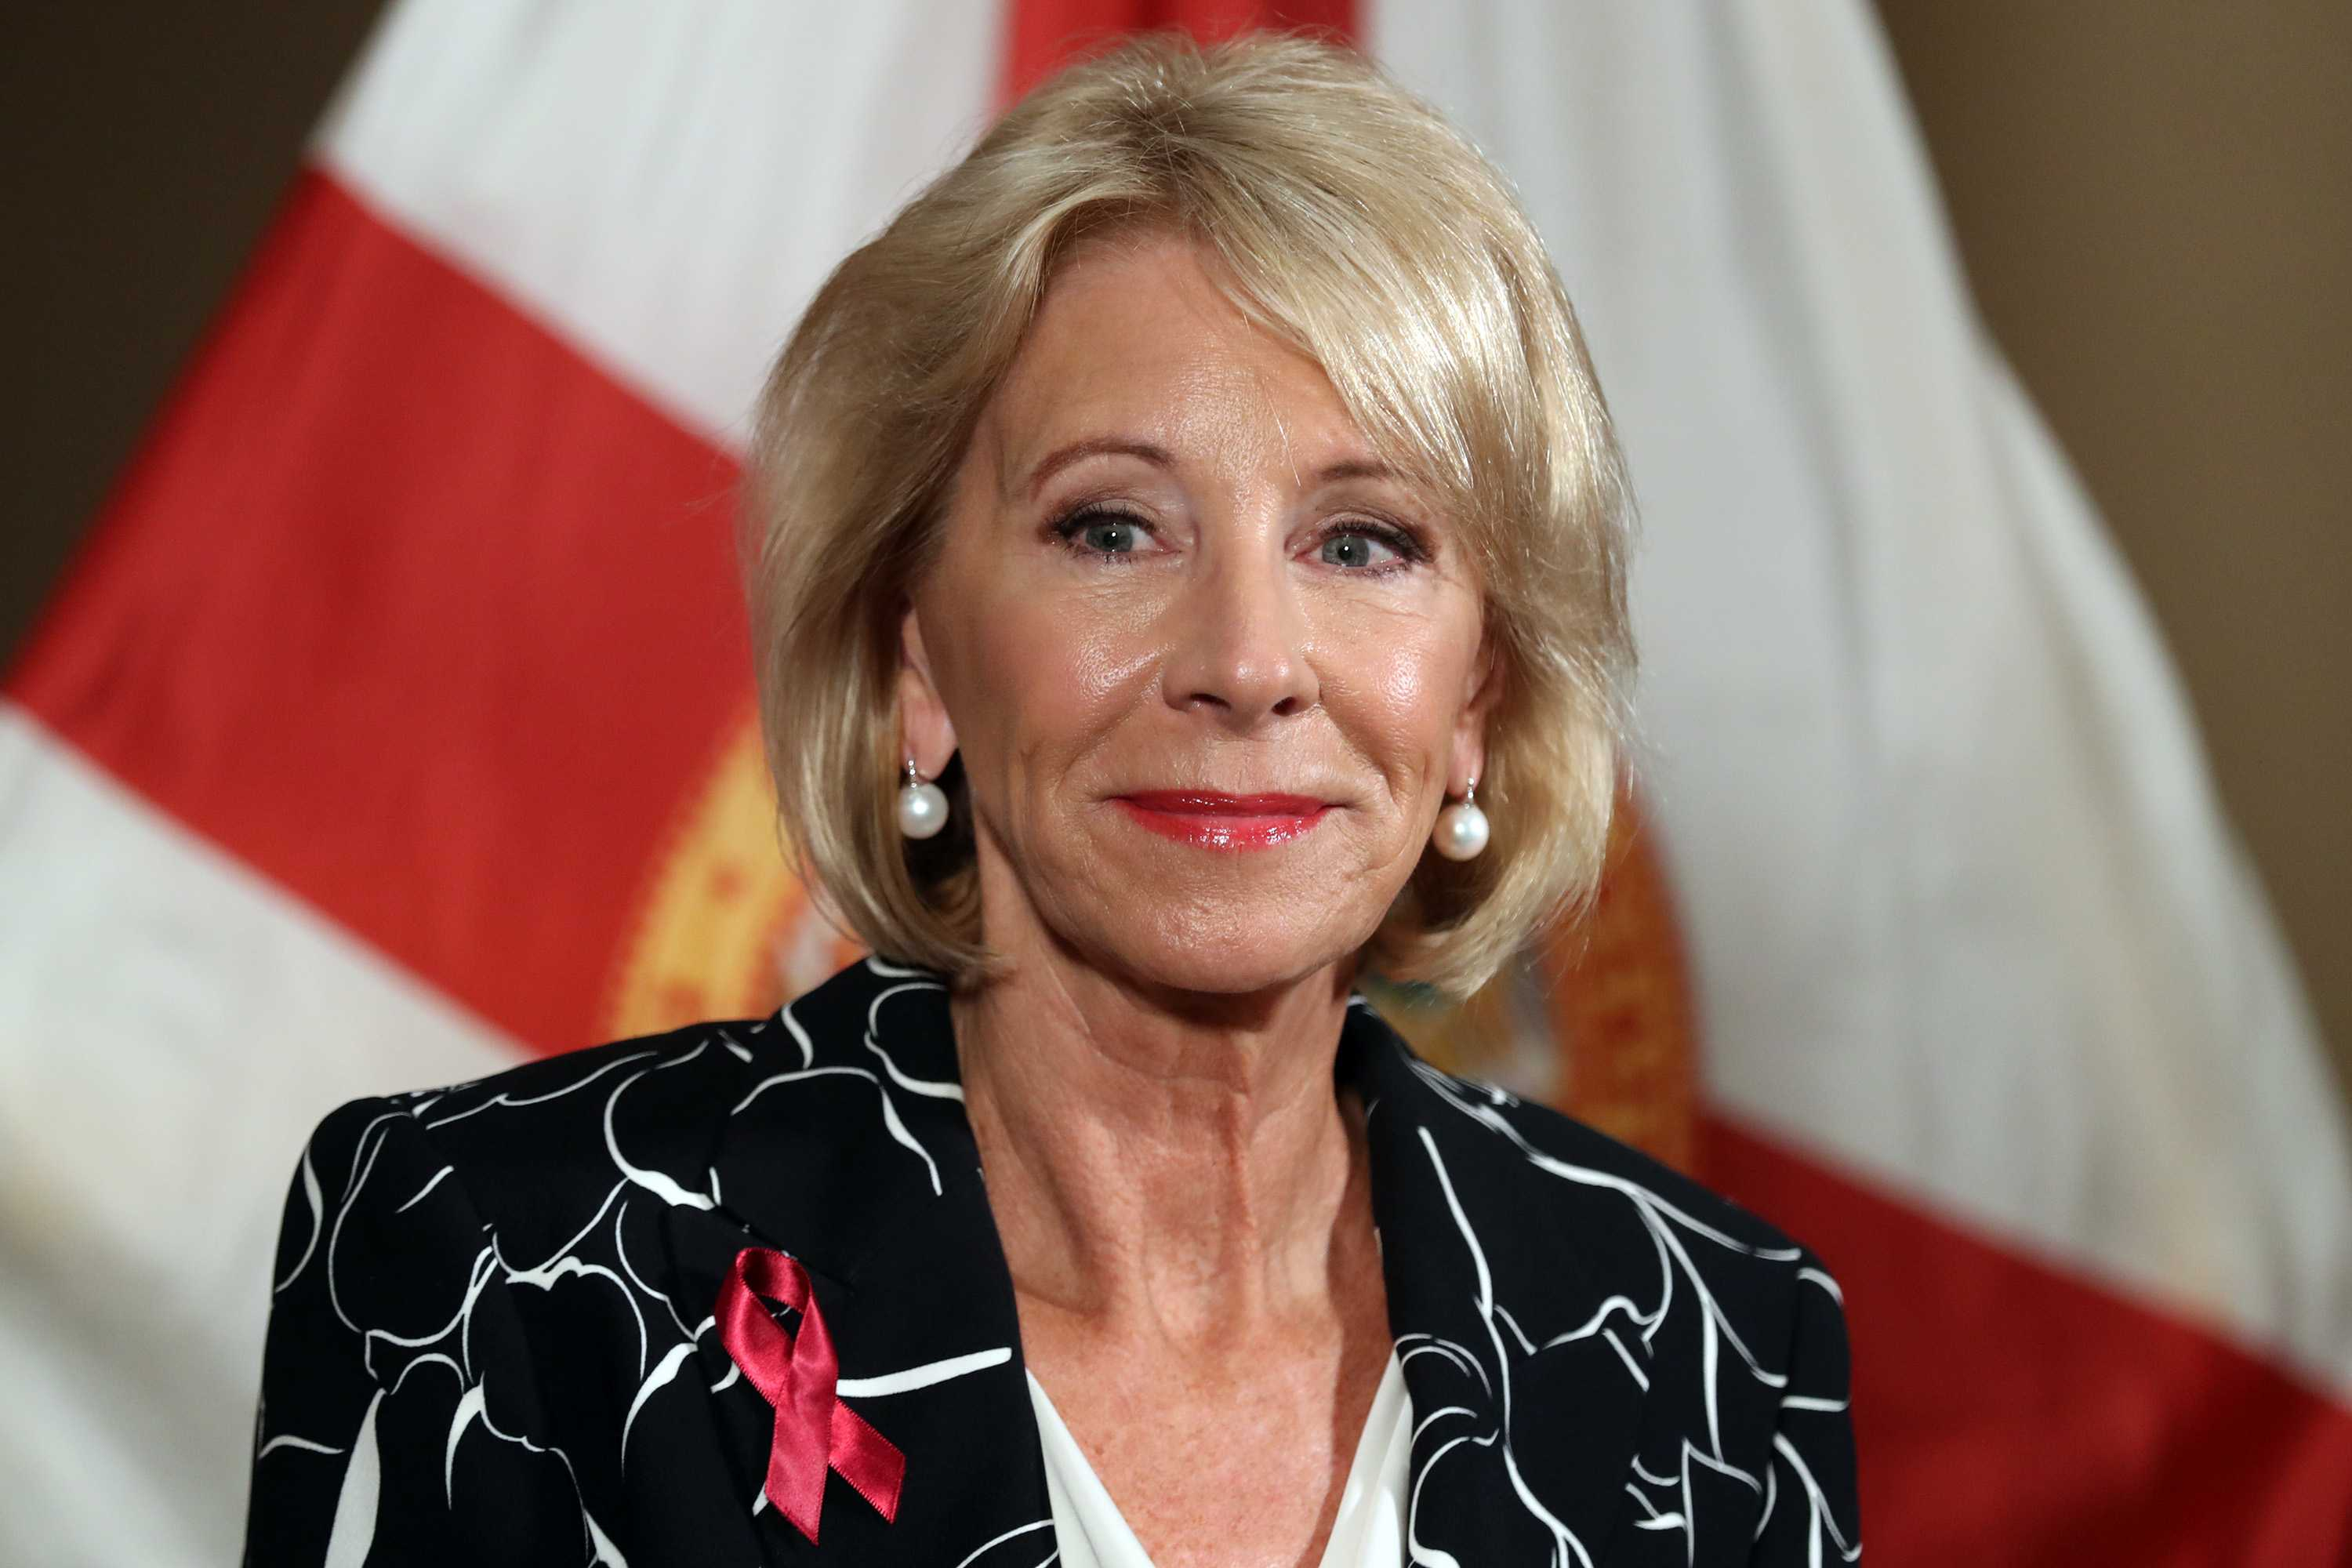 DeVos' reputation struggles